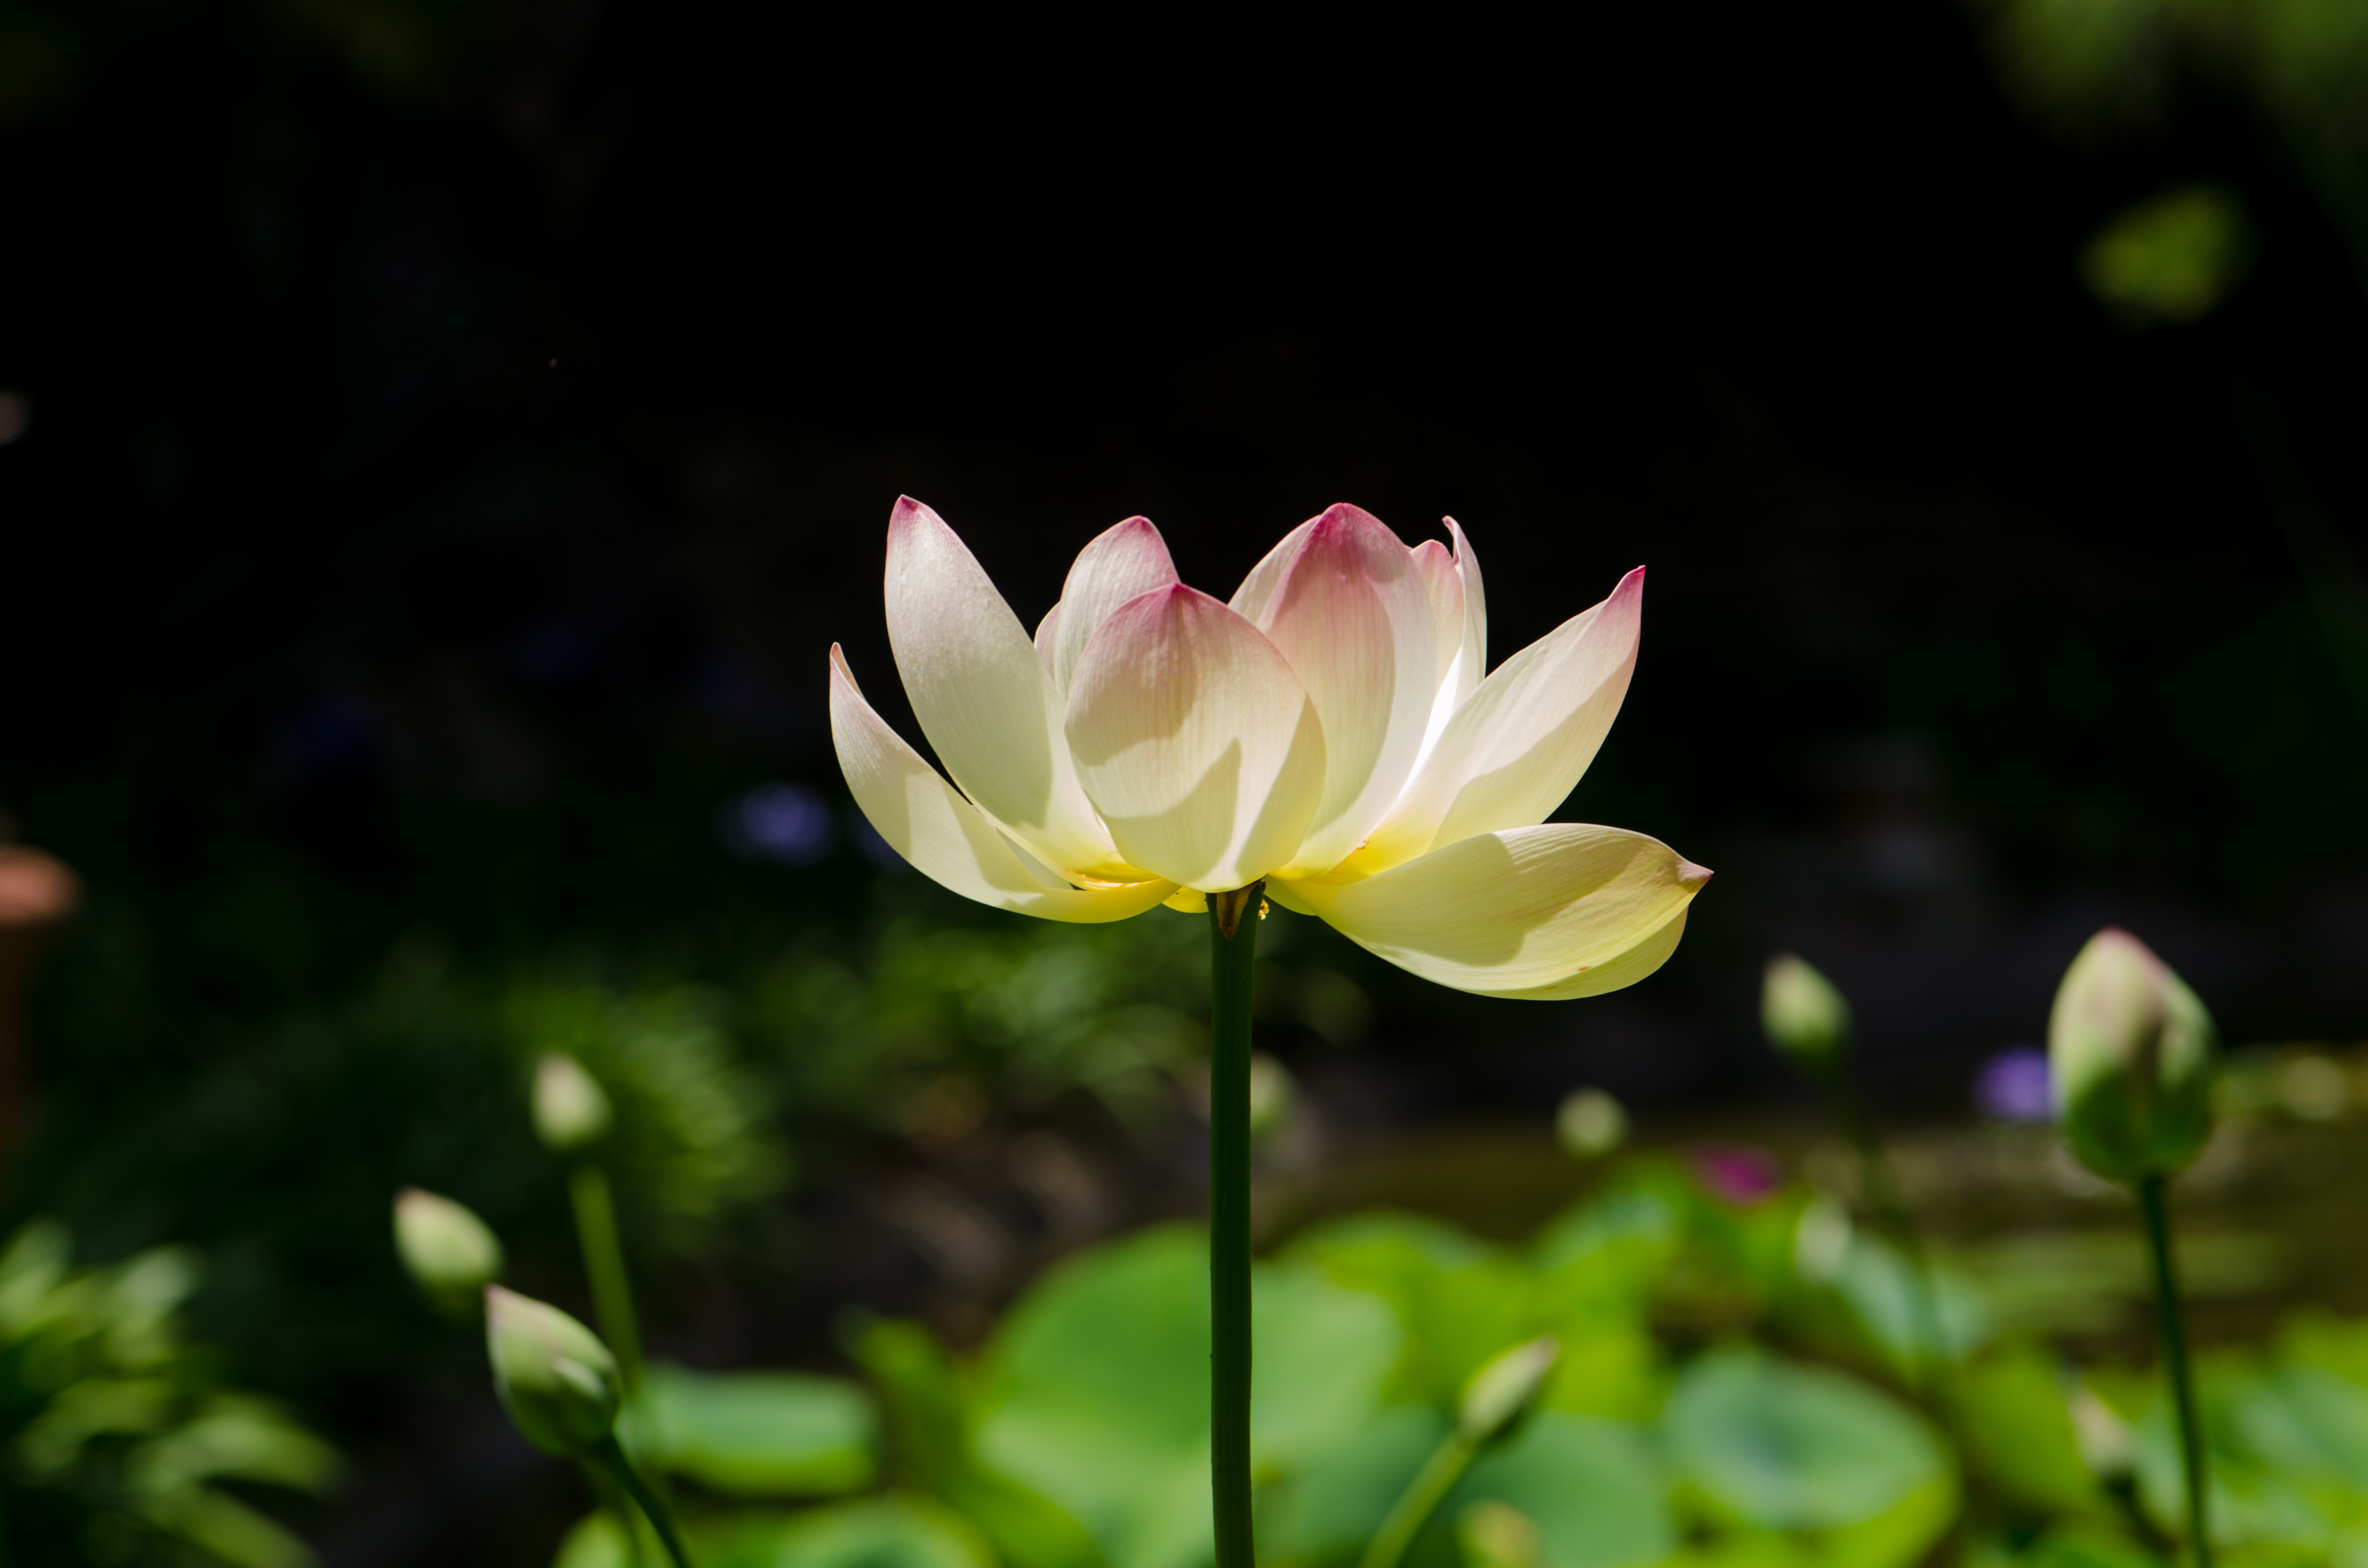 The lotus flower a sacred flower corneliaweberphotography all these images are copyrighted and protected by corneliaweberphotography and are not allowed to be copied or used for any purposes if you do wish to izmirmasajfo